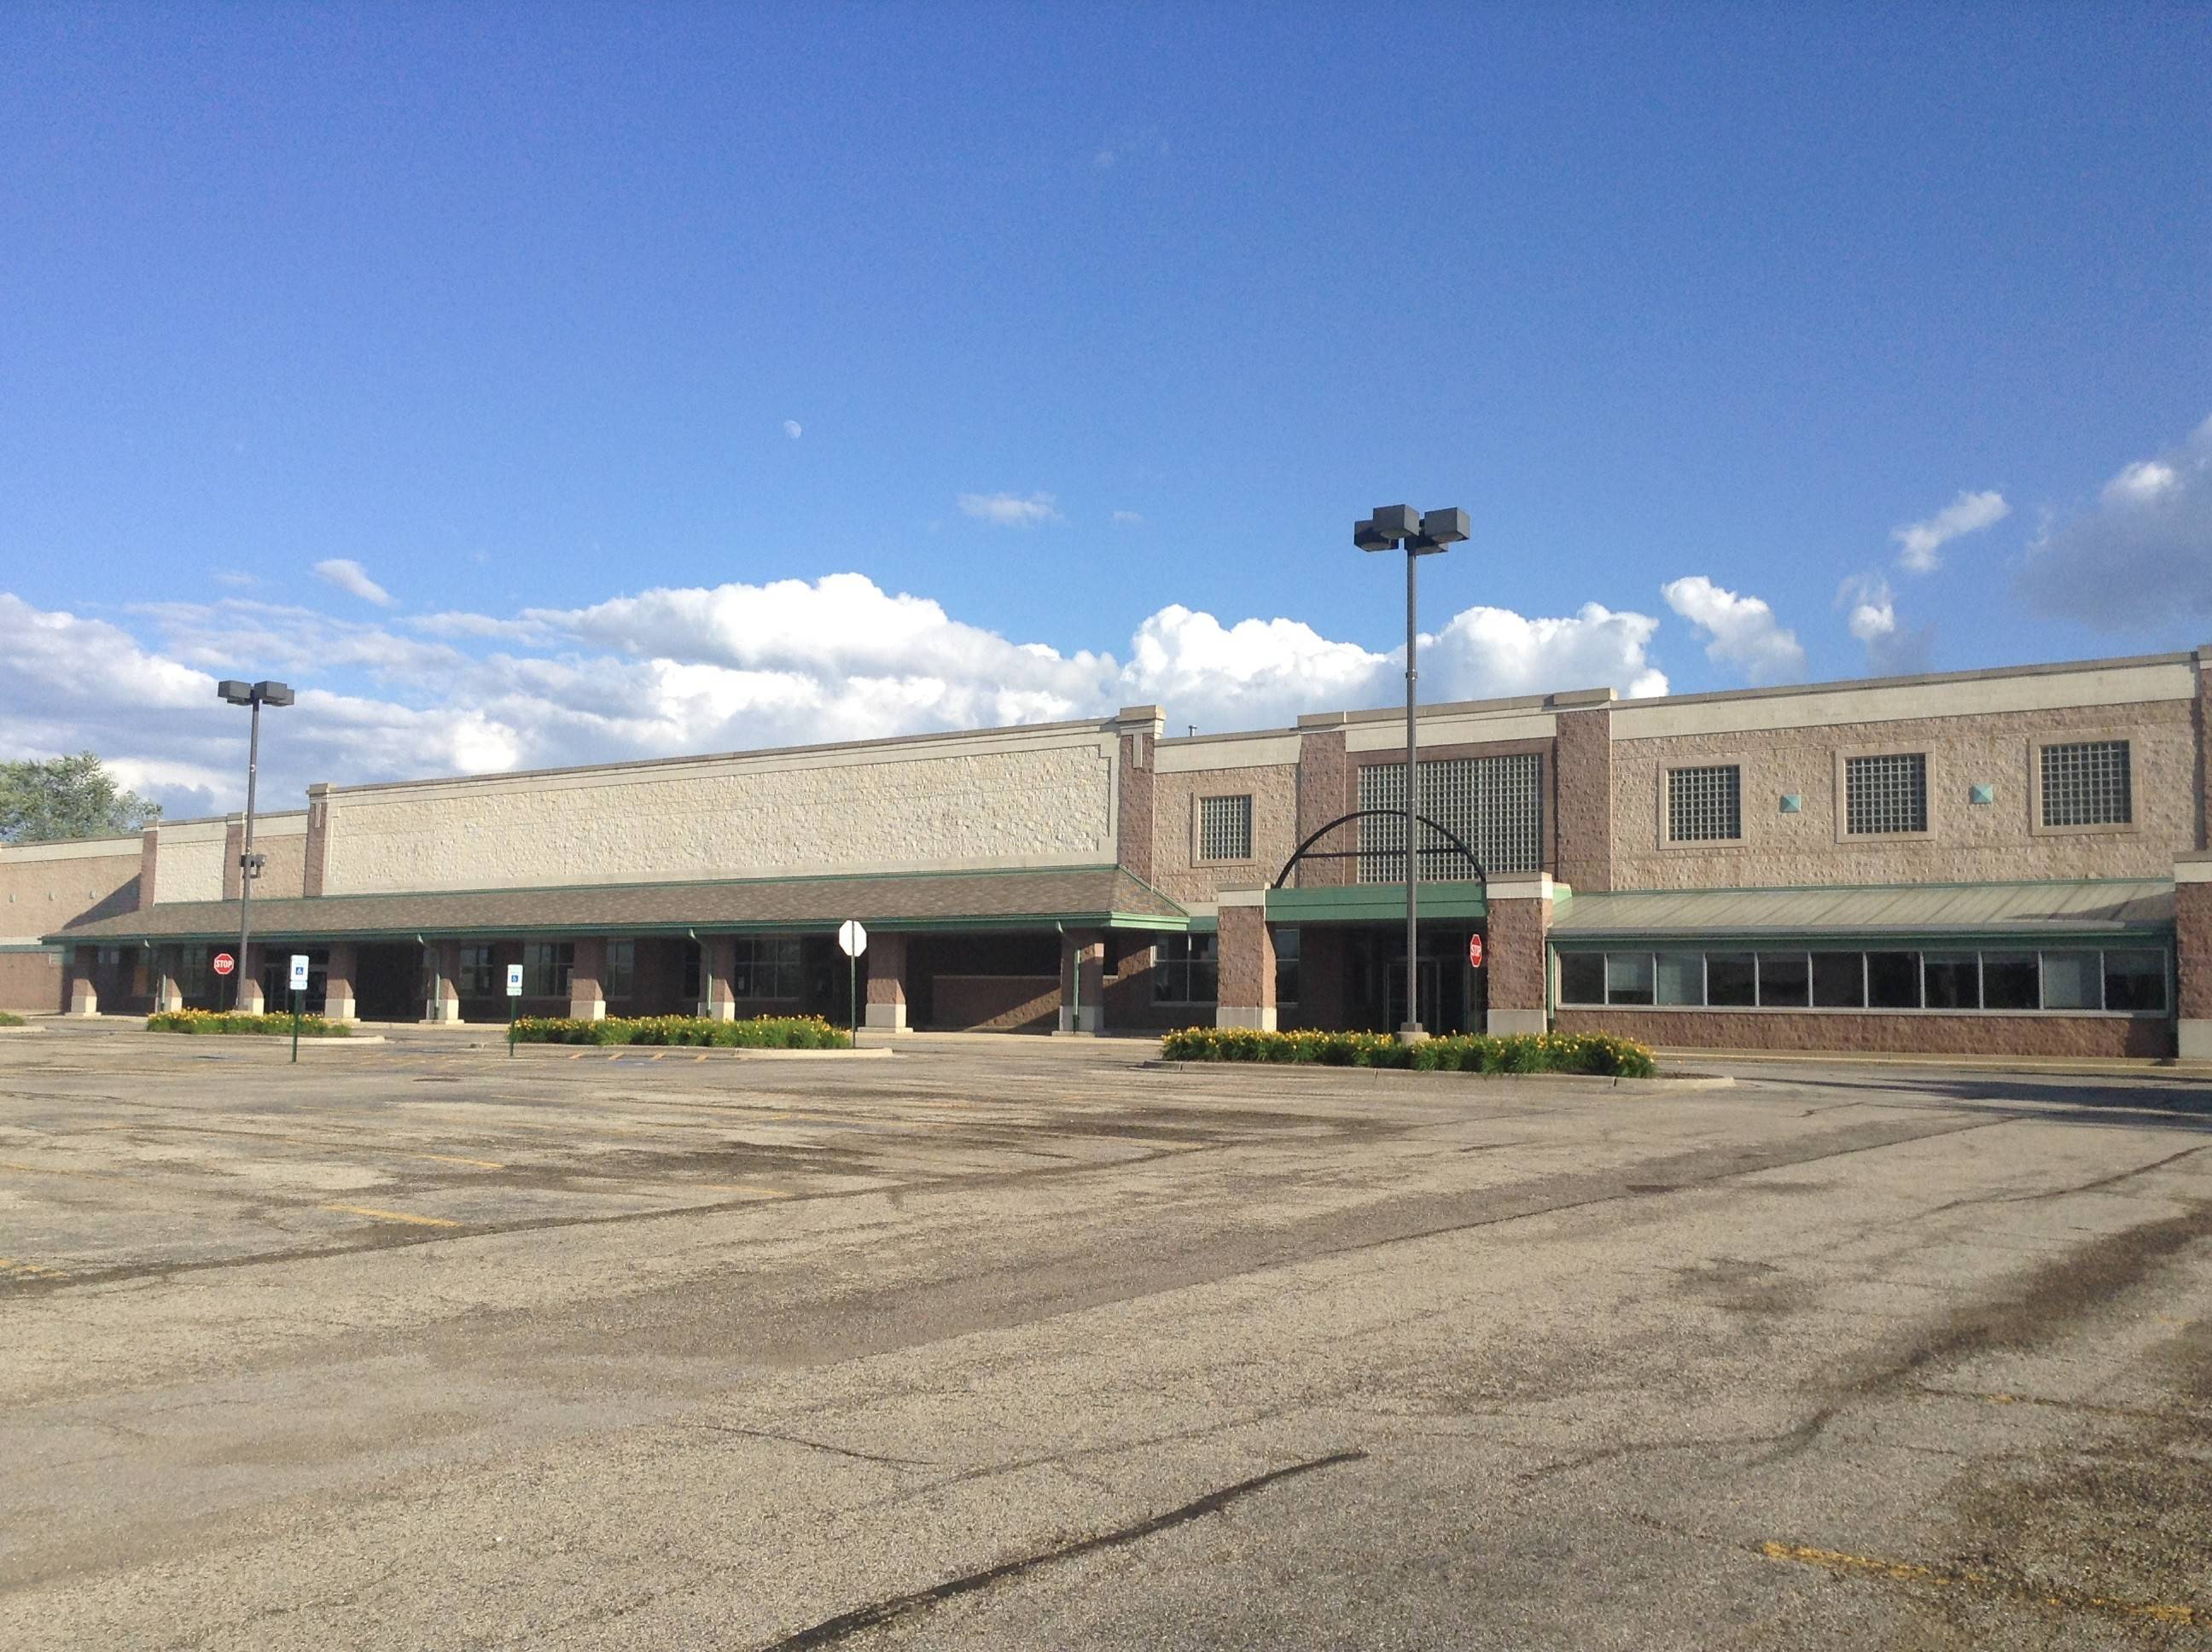 Wauconda Dominick's site primed for new tenant